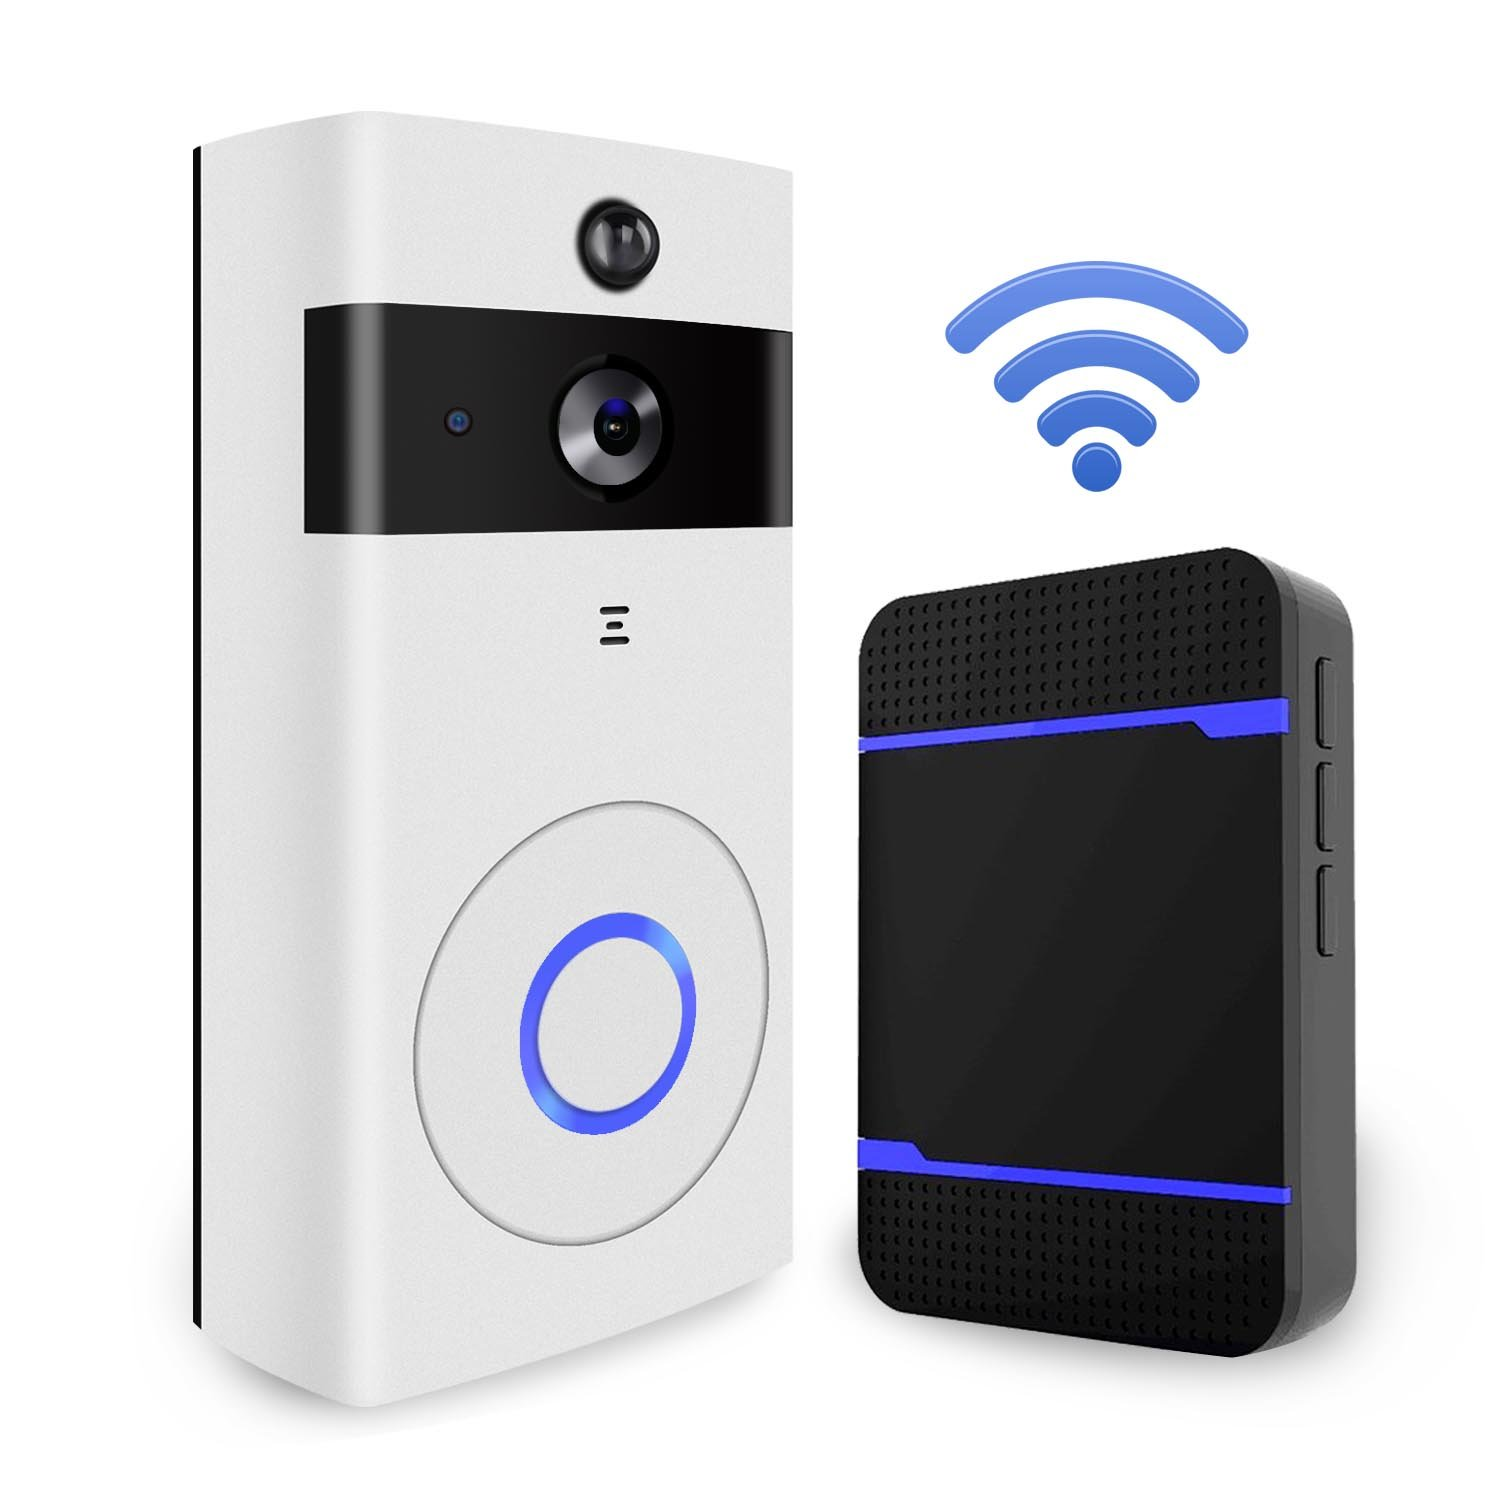 WiFi Video Doorbell Camera, Wireless Doorbell Kit HD SecurityCamera with Chime and 8G SD Card, PIR Motion Detection, Night Vision,Real-time Two-Way Talk for Home and Office,Support iOS and Android